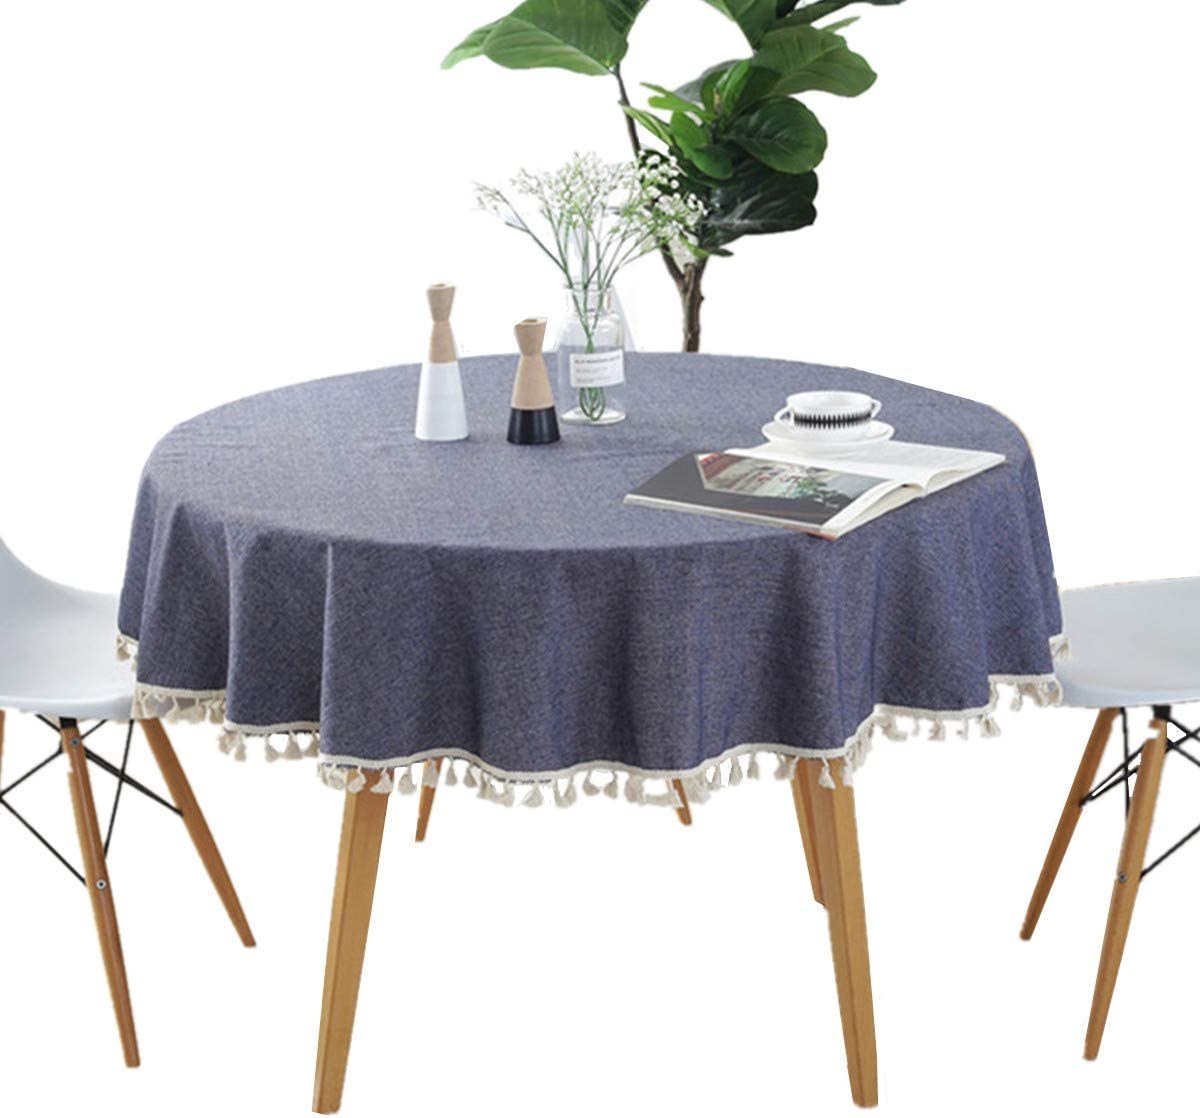 """Round - 60"""" Tablecloth Cotton Blue Tablecloth with Multi-Tassels for Home Tabletop Decoration"""